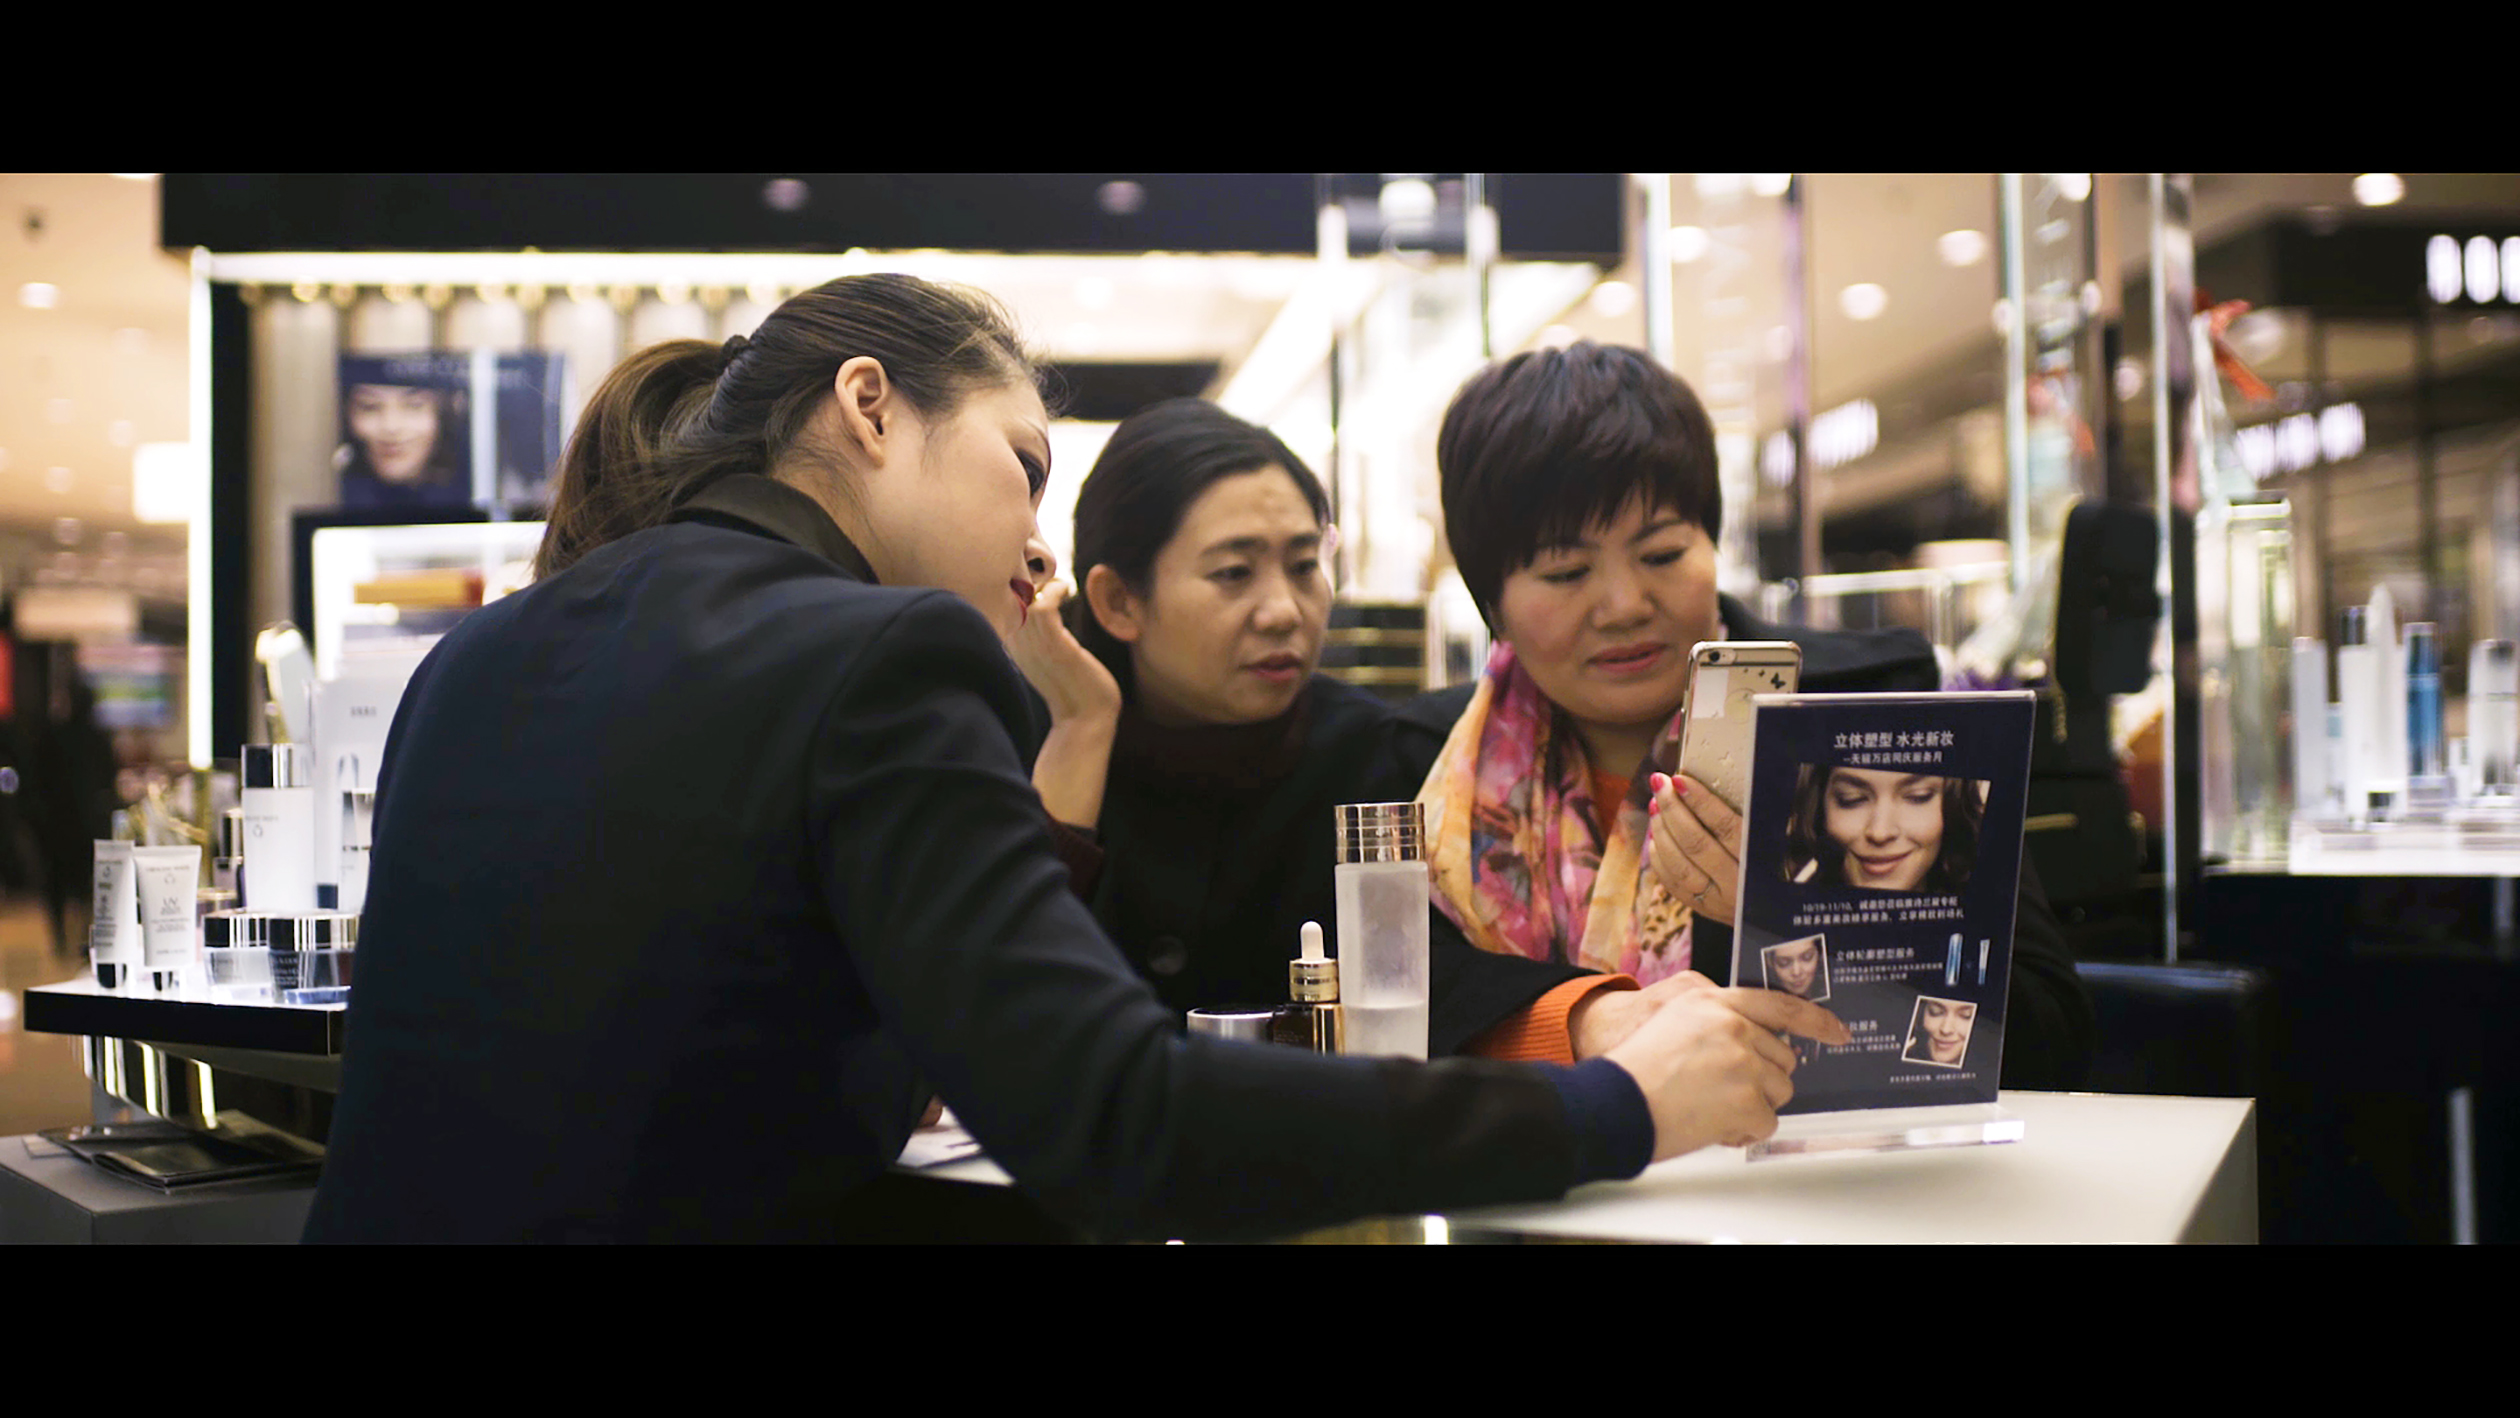 Chinese shoppers read about an Alibaba promotion at an Estée Lauder store.